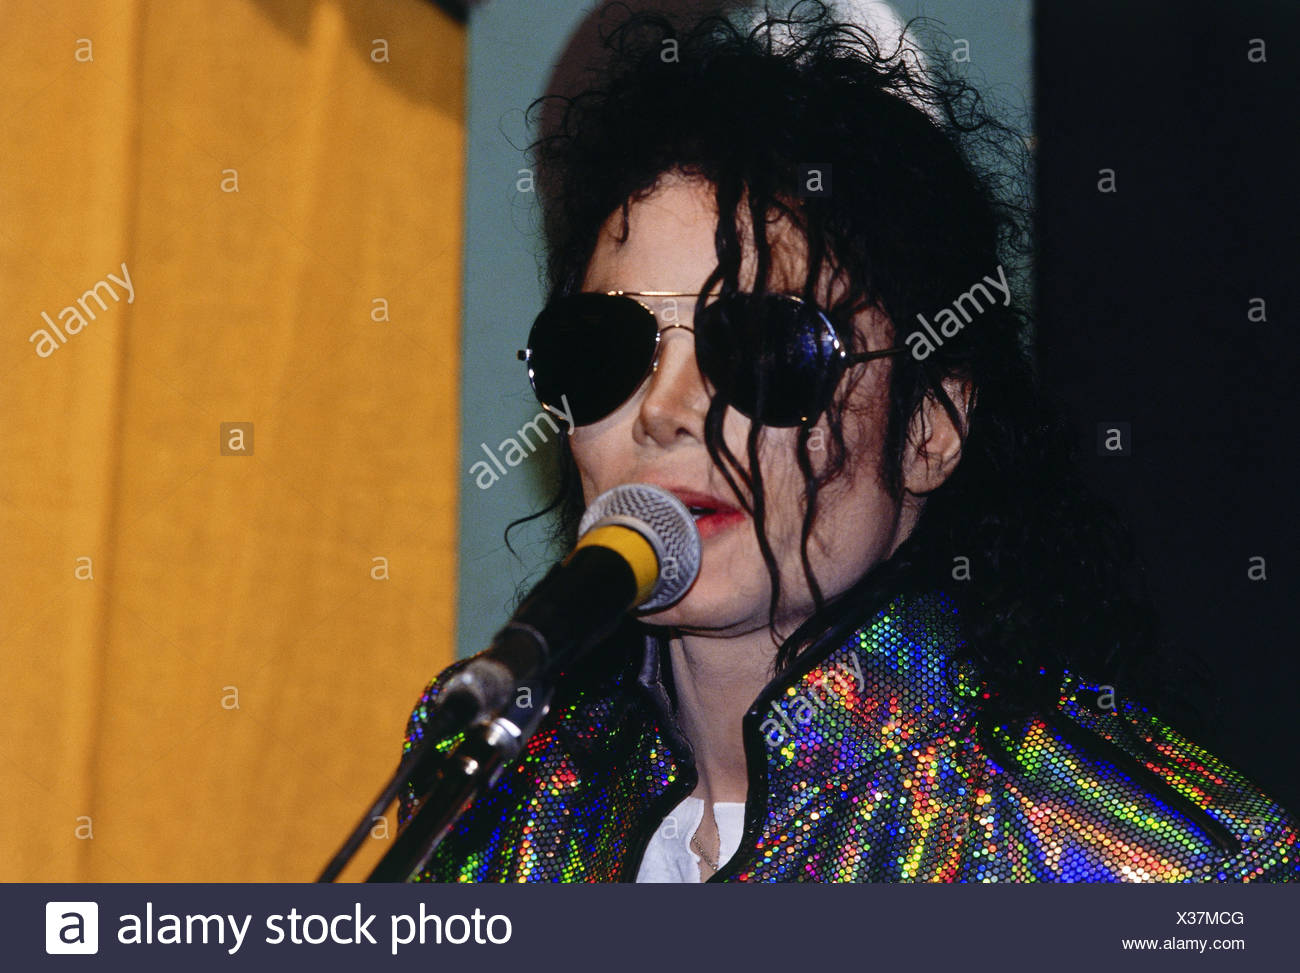 Jackson, Michael, 29.8.1958 - 25.6.2009, American musician (pop singer), audience during his concert, Olympiastadion, Munich, Germany, 28.6.1992, Additional-Rights-Clearances-NA - Stock Image